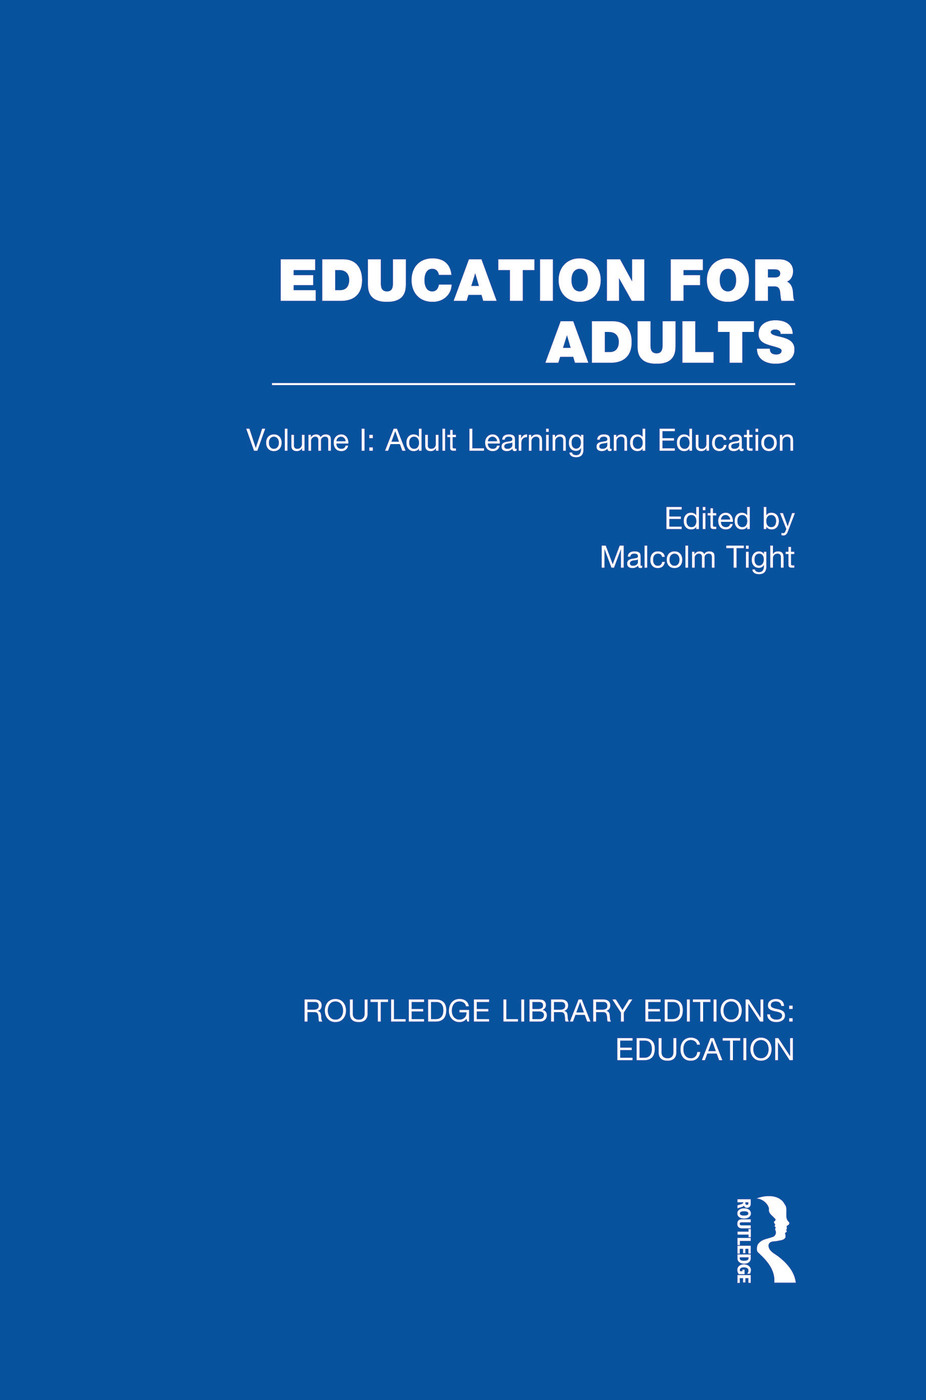 Education for Adults: Volume 1 Adult Learning and Education book cover